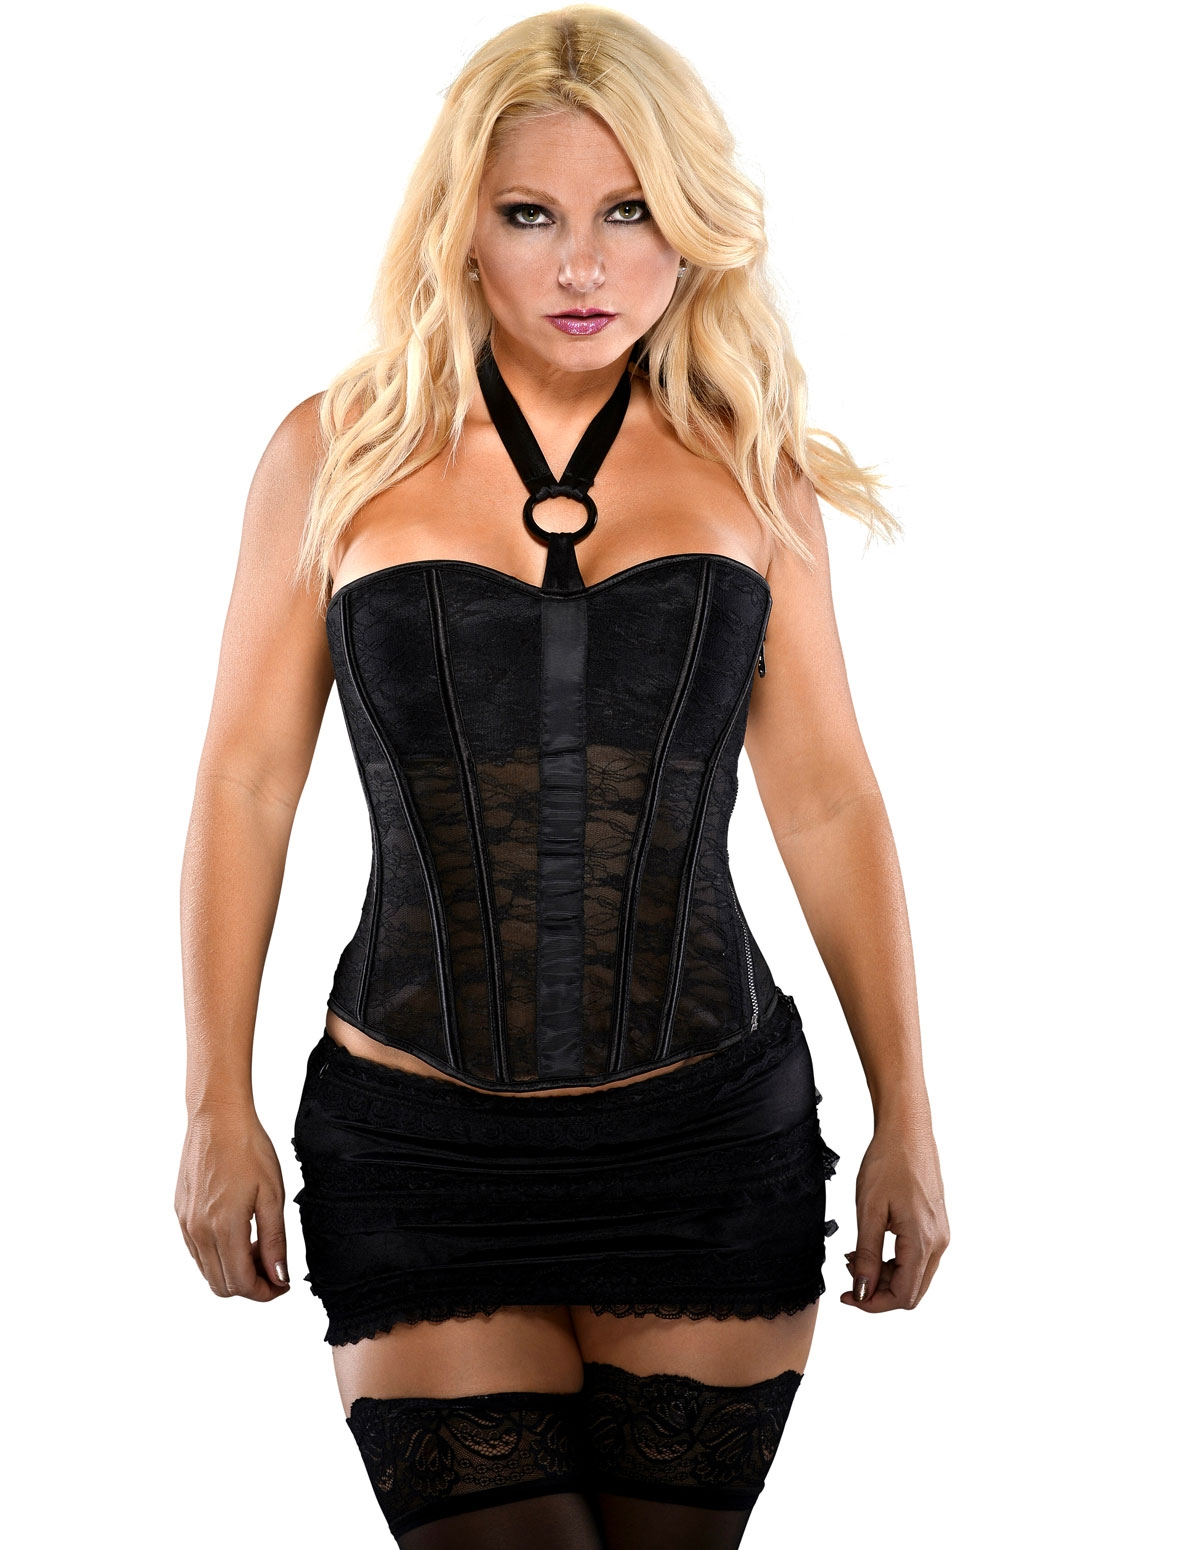 Lace Halter Corset With Choker